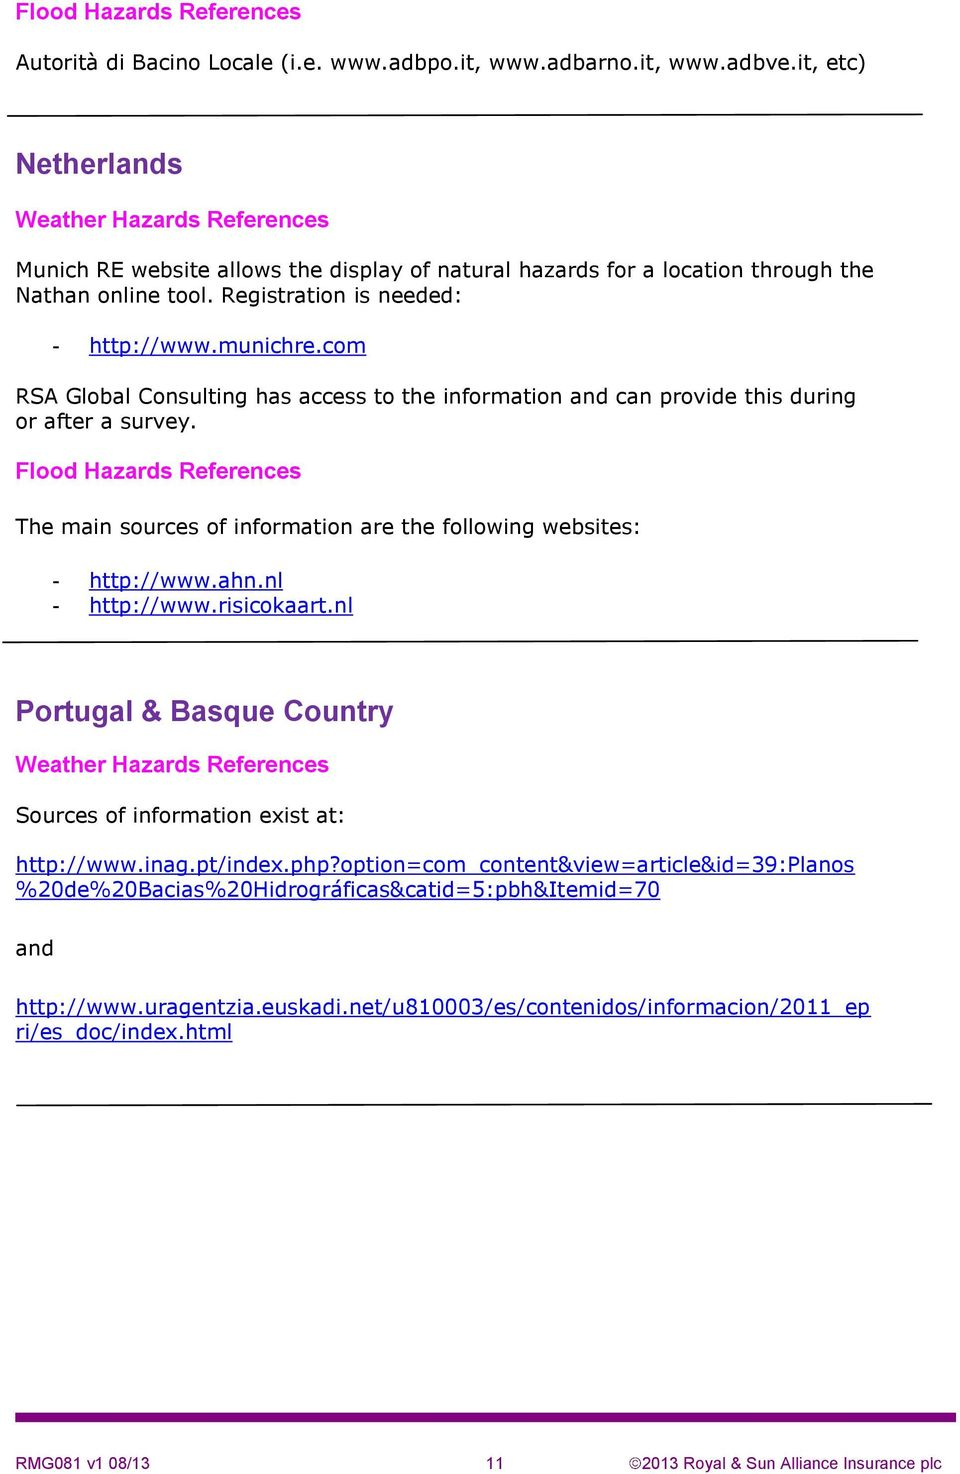 websites: - http://www.ahn.nl - http://www.risicokaart.nl Portugal & Basque Country Sources of information exist at: http://www.inag.pt/index.php?